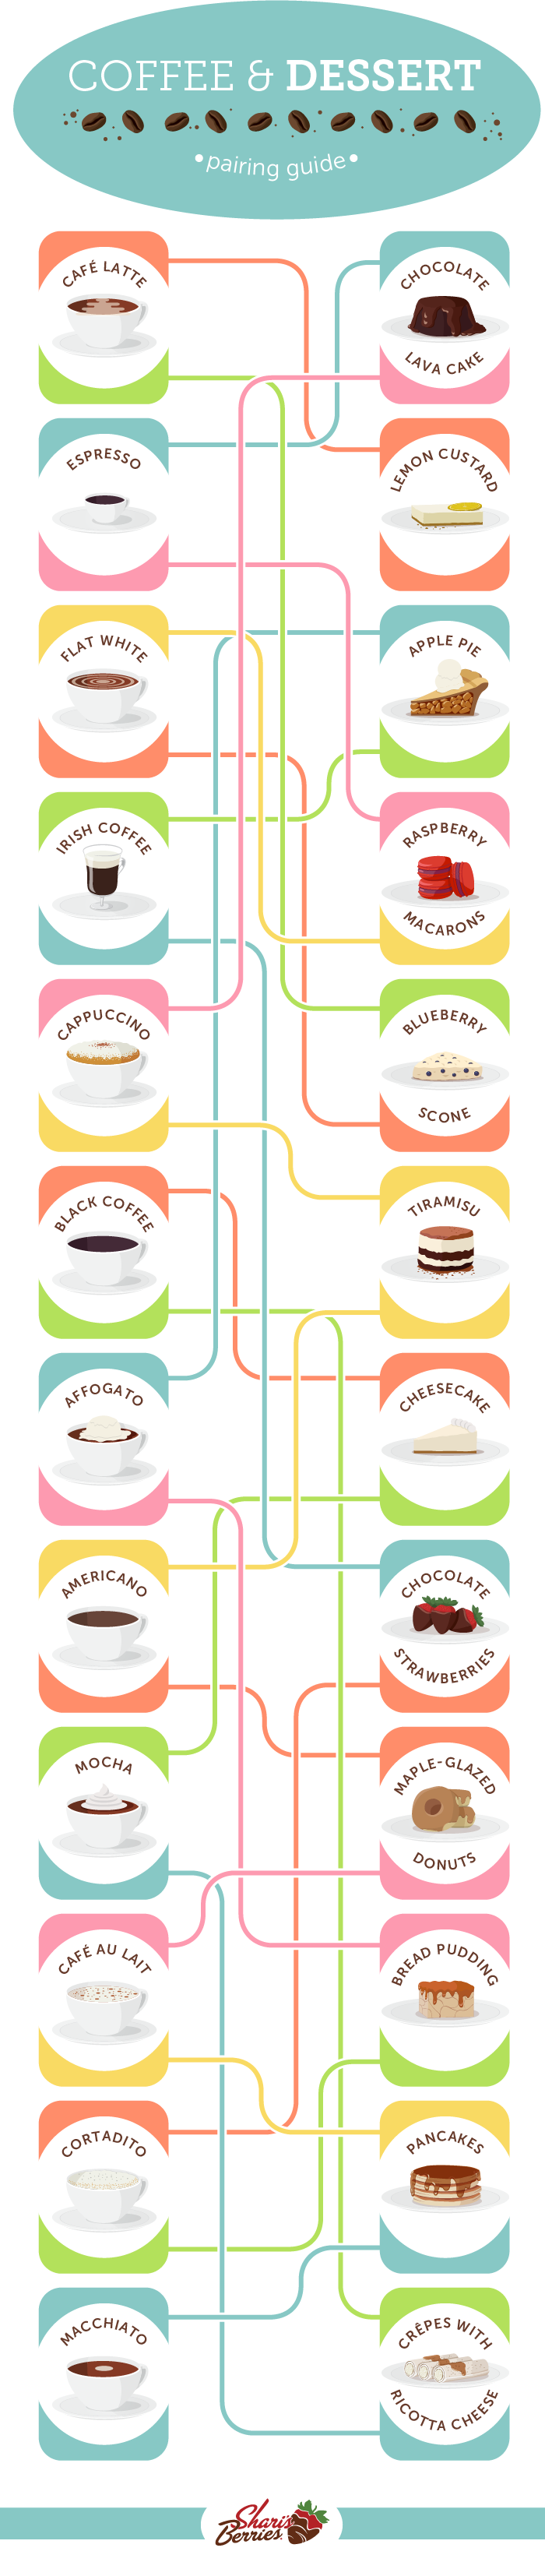 Coffee and Dessert pairing guide from Berries.com